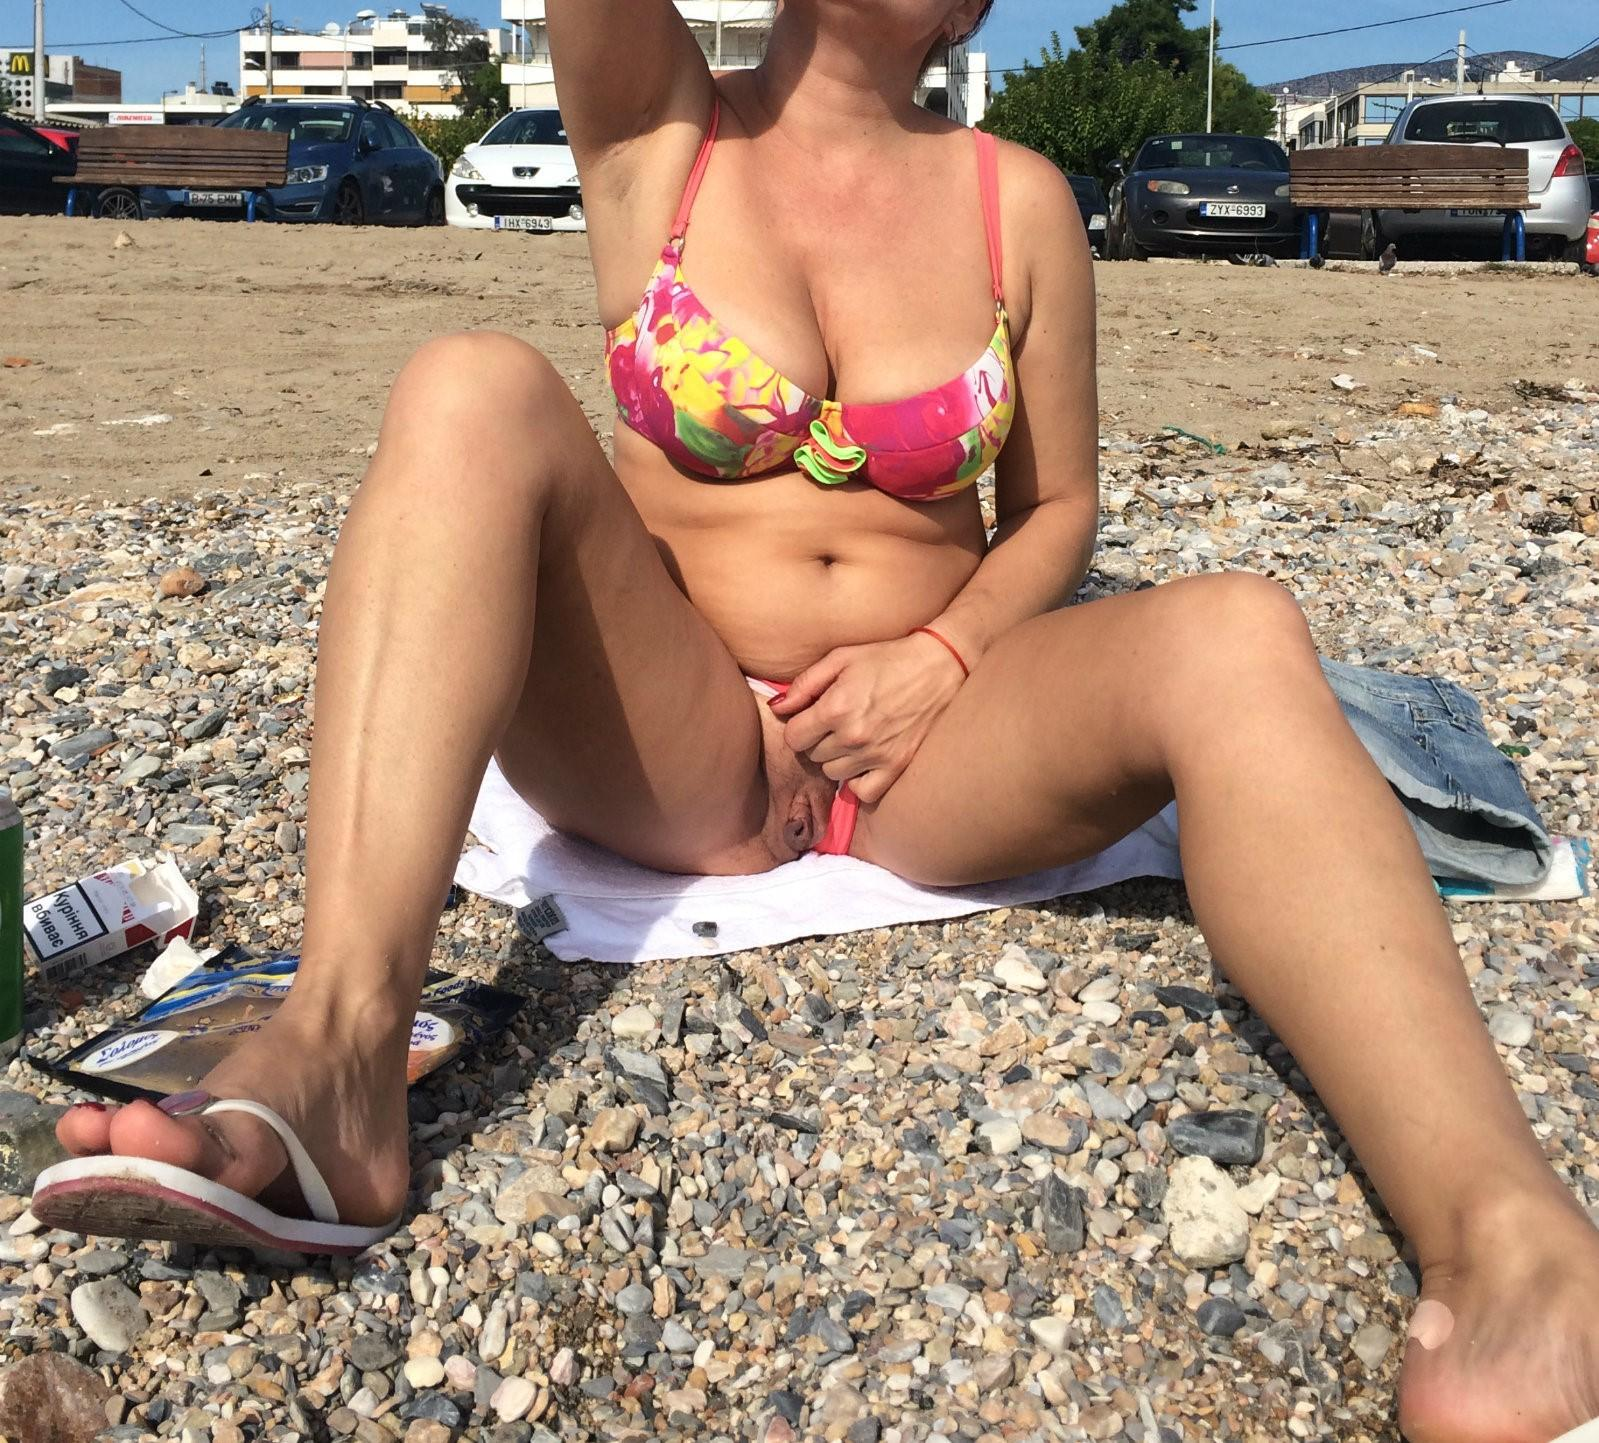 Russian MILF in a bikini showcases her smooth pussy on the beach. Old lady on the beach removes panty to show shaved pussy